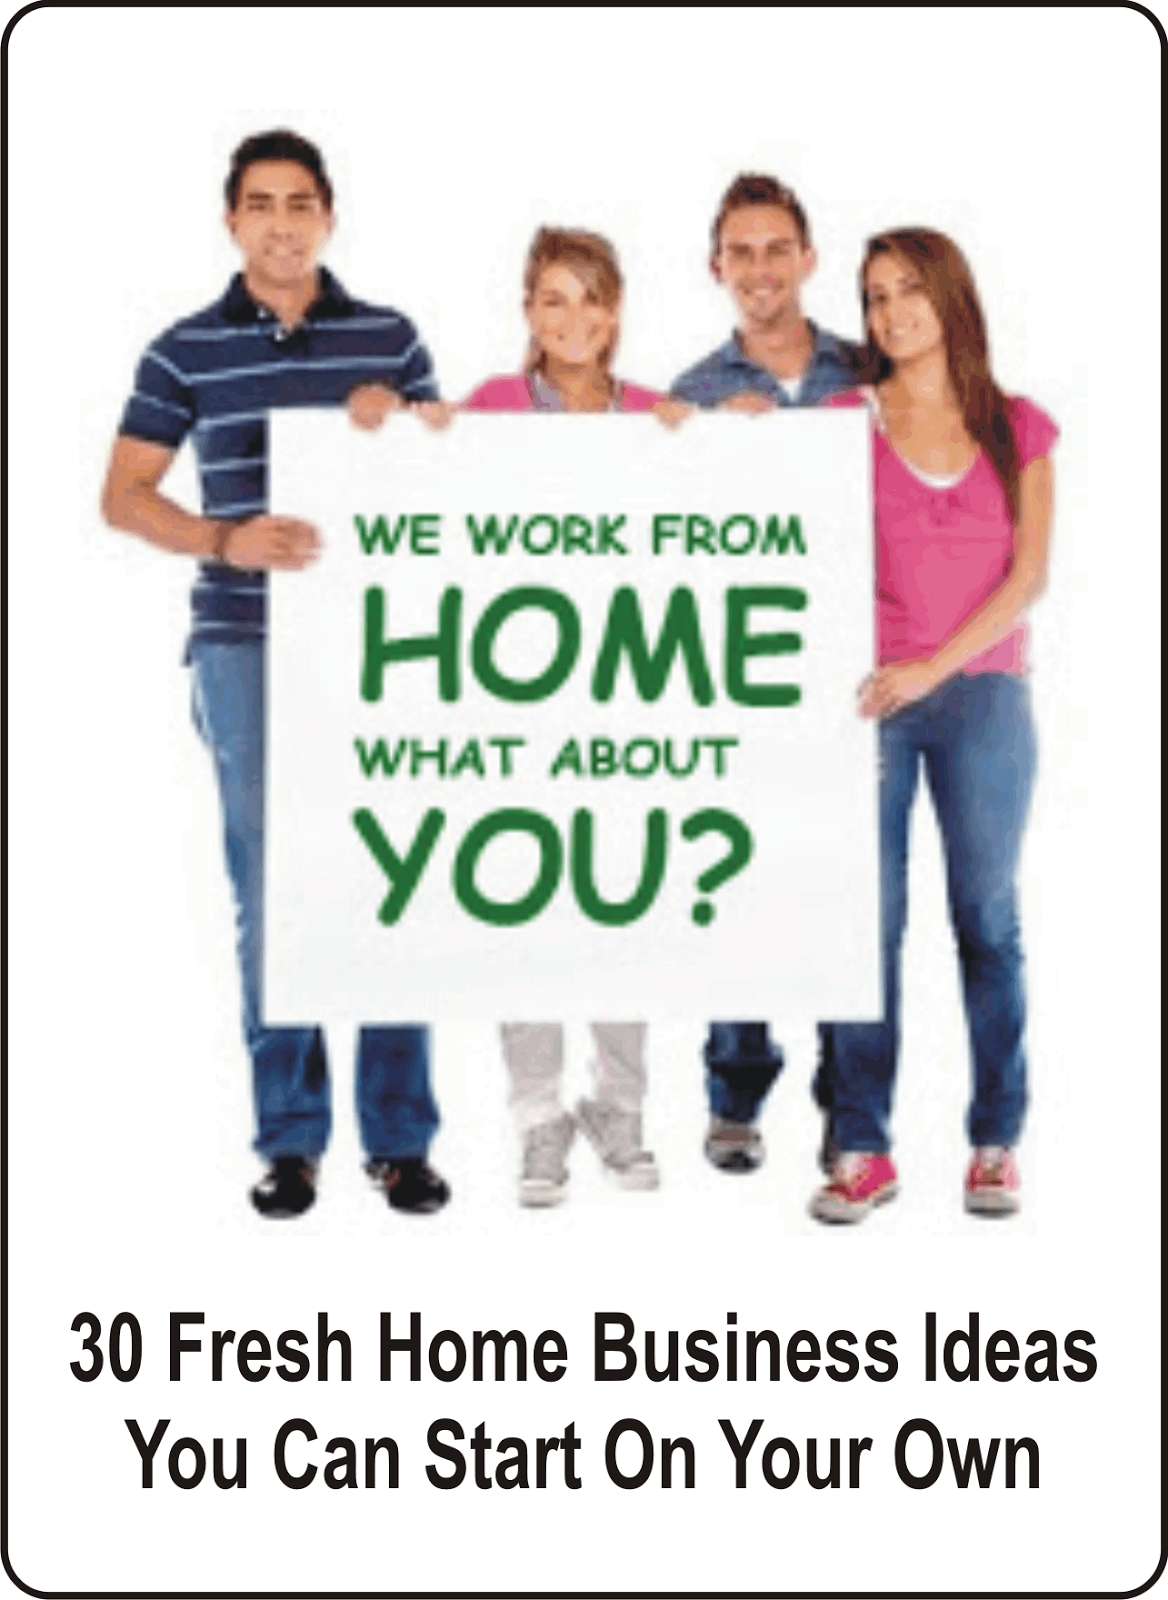 10 Elegant Owning Your Own Business Ideas home business ideas you can start on your own beautiful ideas for